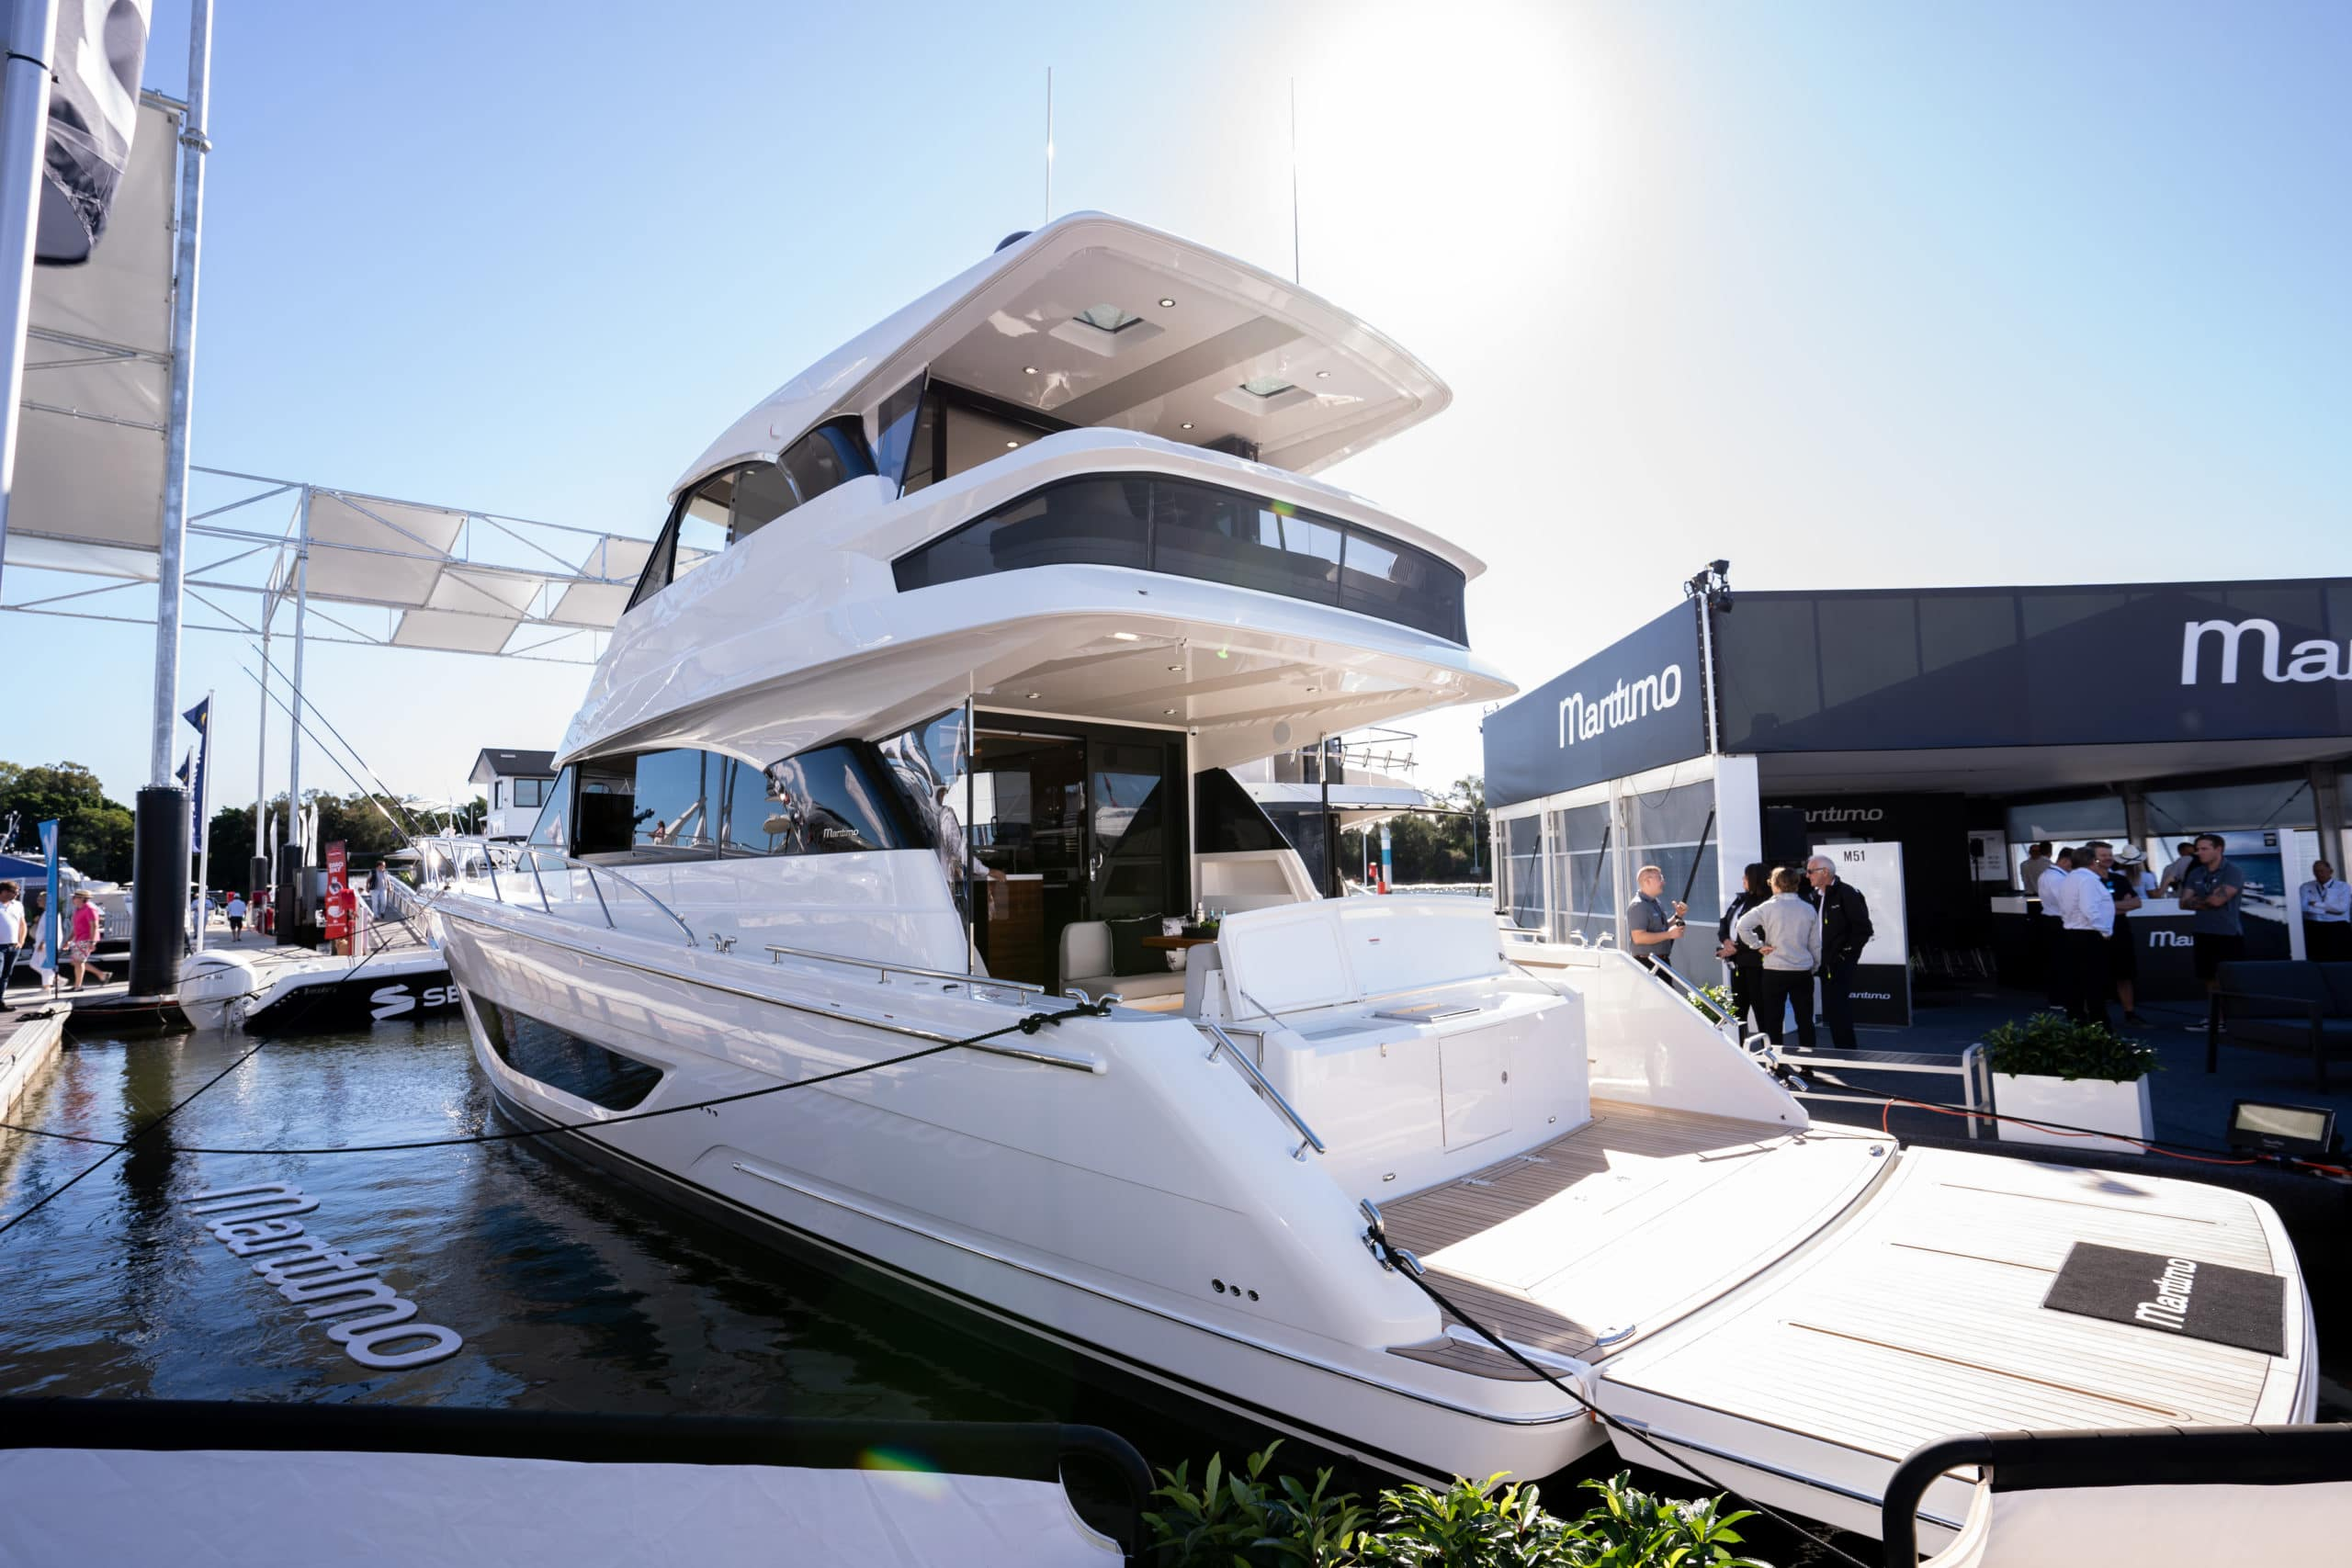 wide angle of new M55 at Maritimo stall at Snactuary Cove International Boat Show